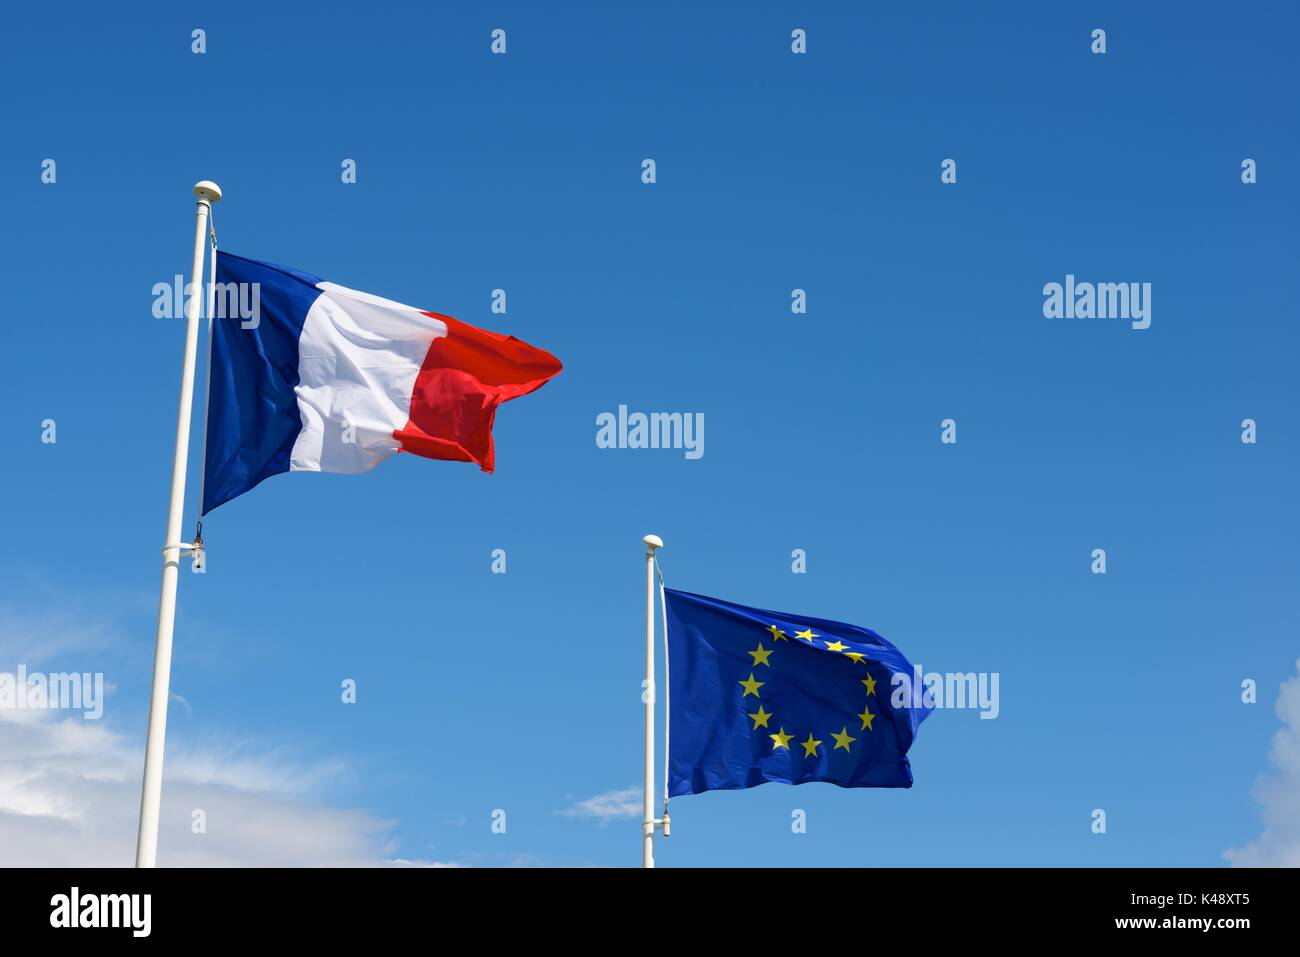 Close-up of the flags of the European Union and France. - Stock Image